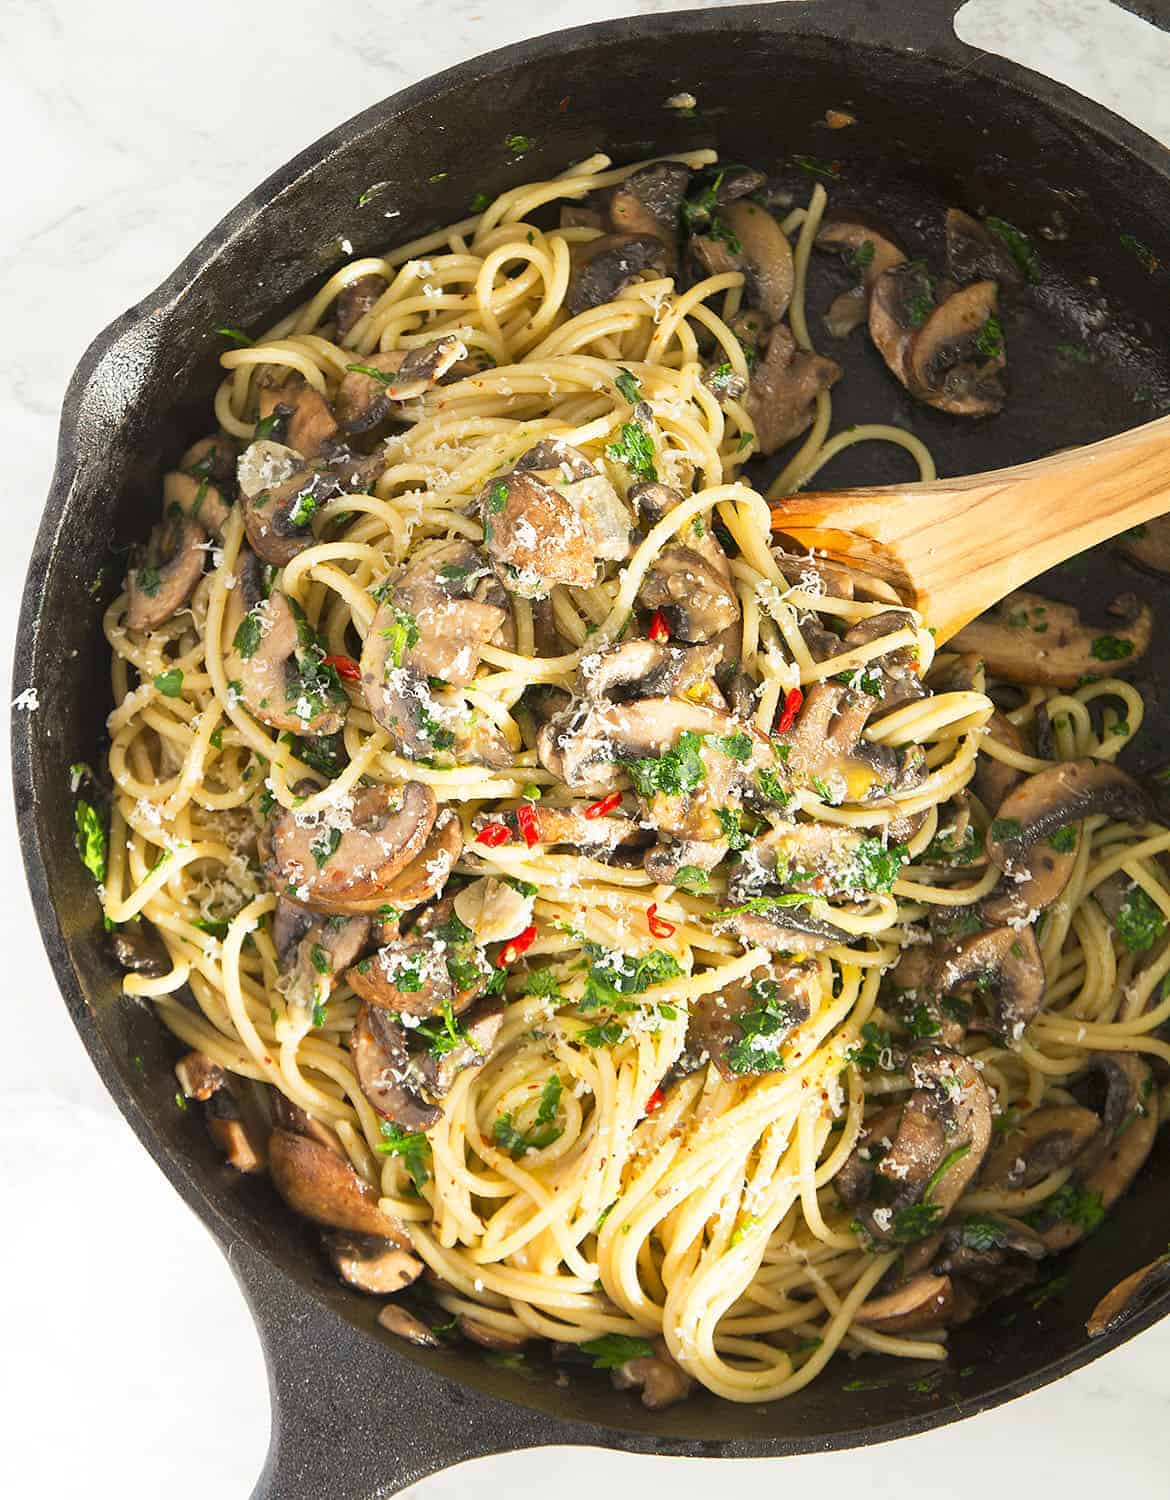 This garlic mushroom pasta makes an utterly delicious weeknight dinner and comes together in 15 minutes, this is a real last minute treat for spaghetti and mushroom lovers and guaranteed to please the entire family.